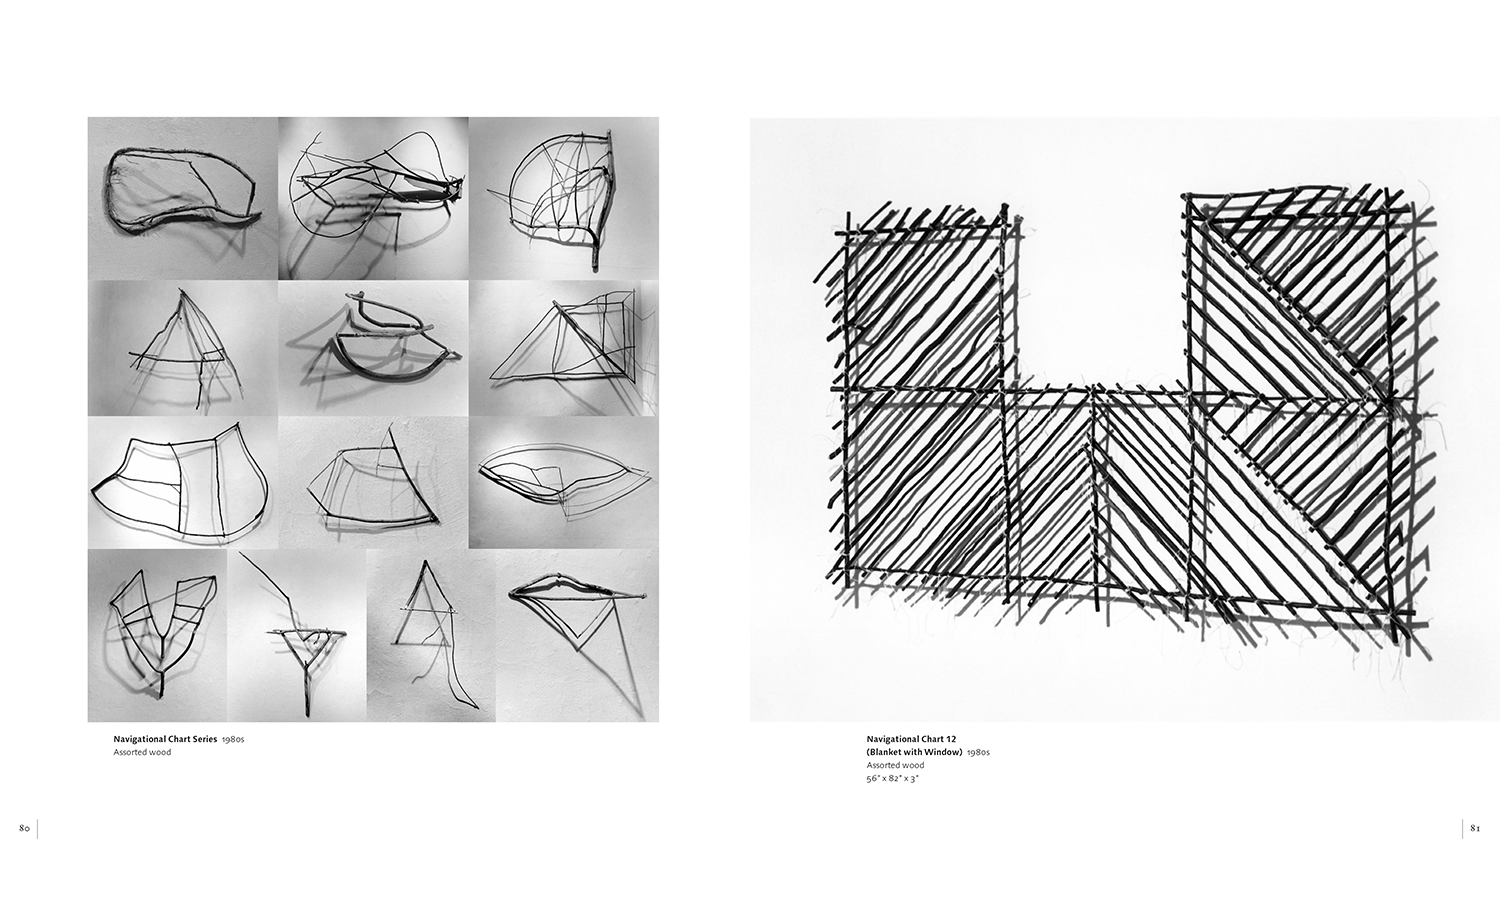 Udvardy_BookSpreads_ForWEB-8.png